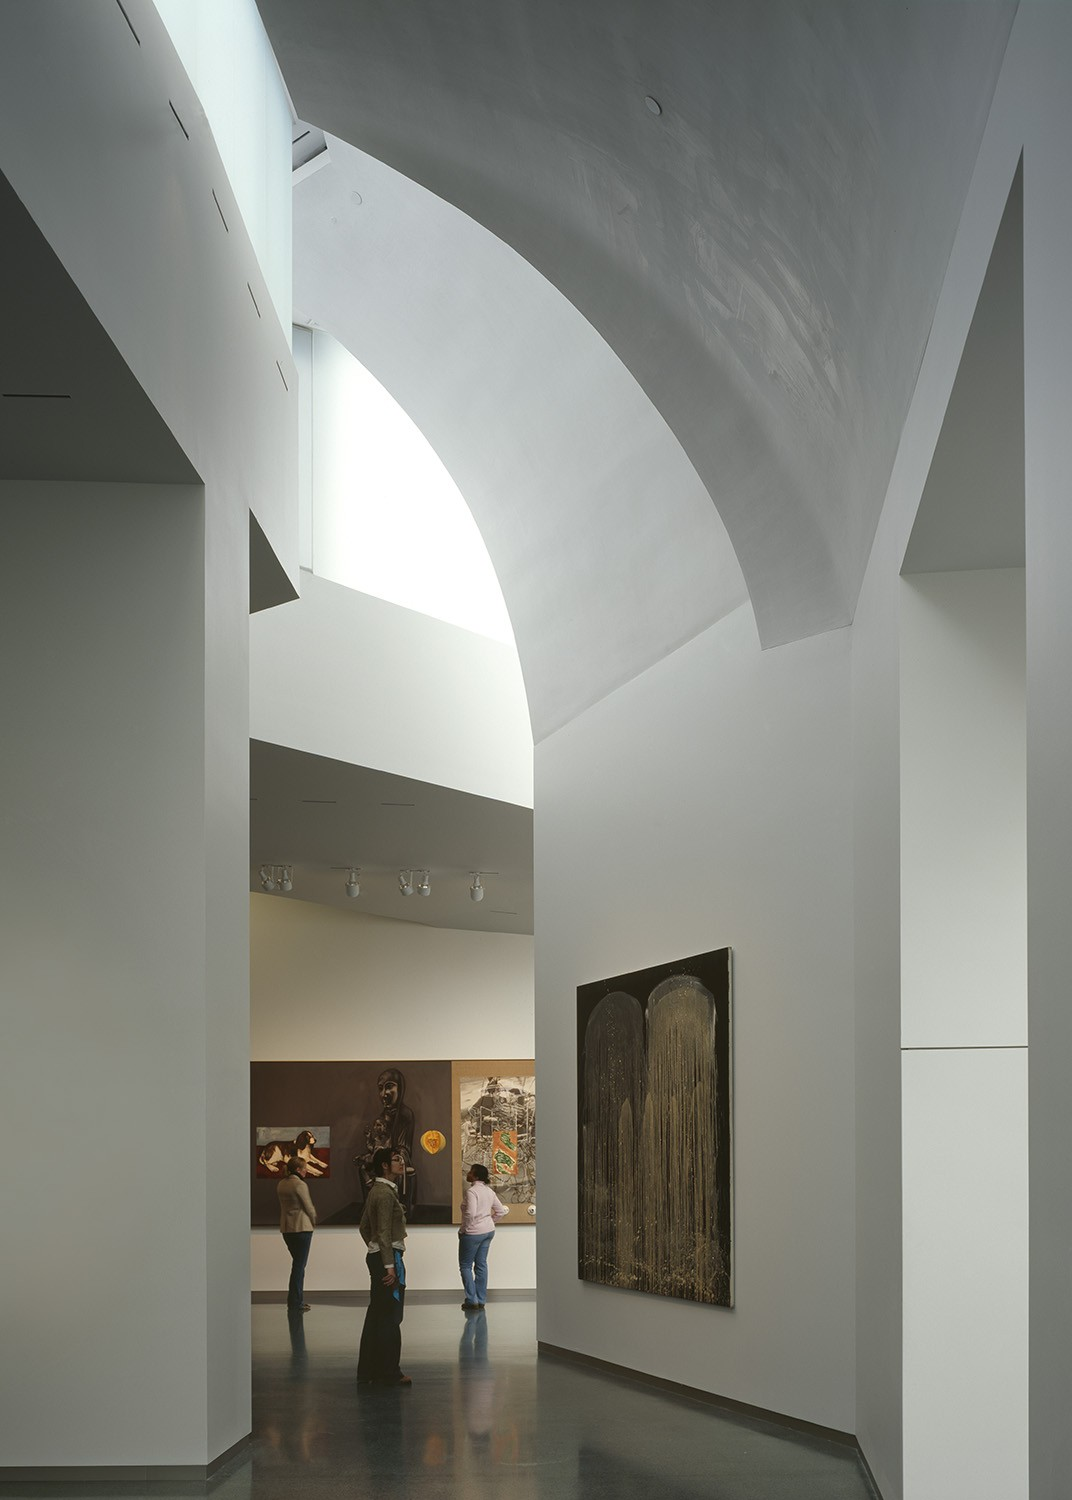 https://s3.us-east-2.amazonaws.com/steven-holl/uploads/projects/project-images/RolandHalbe_NAMA_RH1625-242_WV.jpg